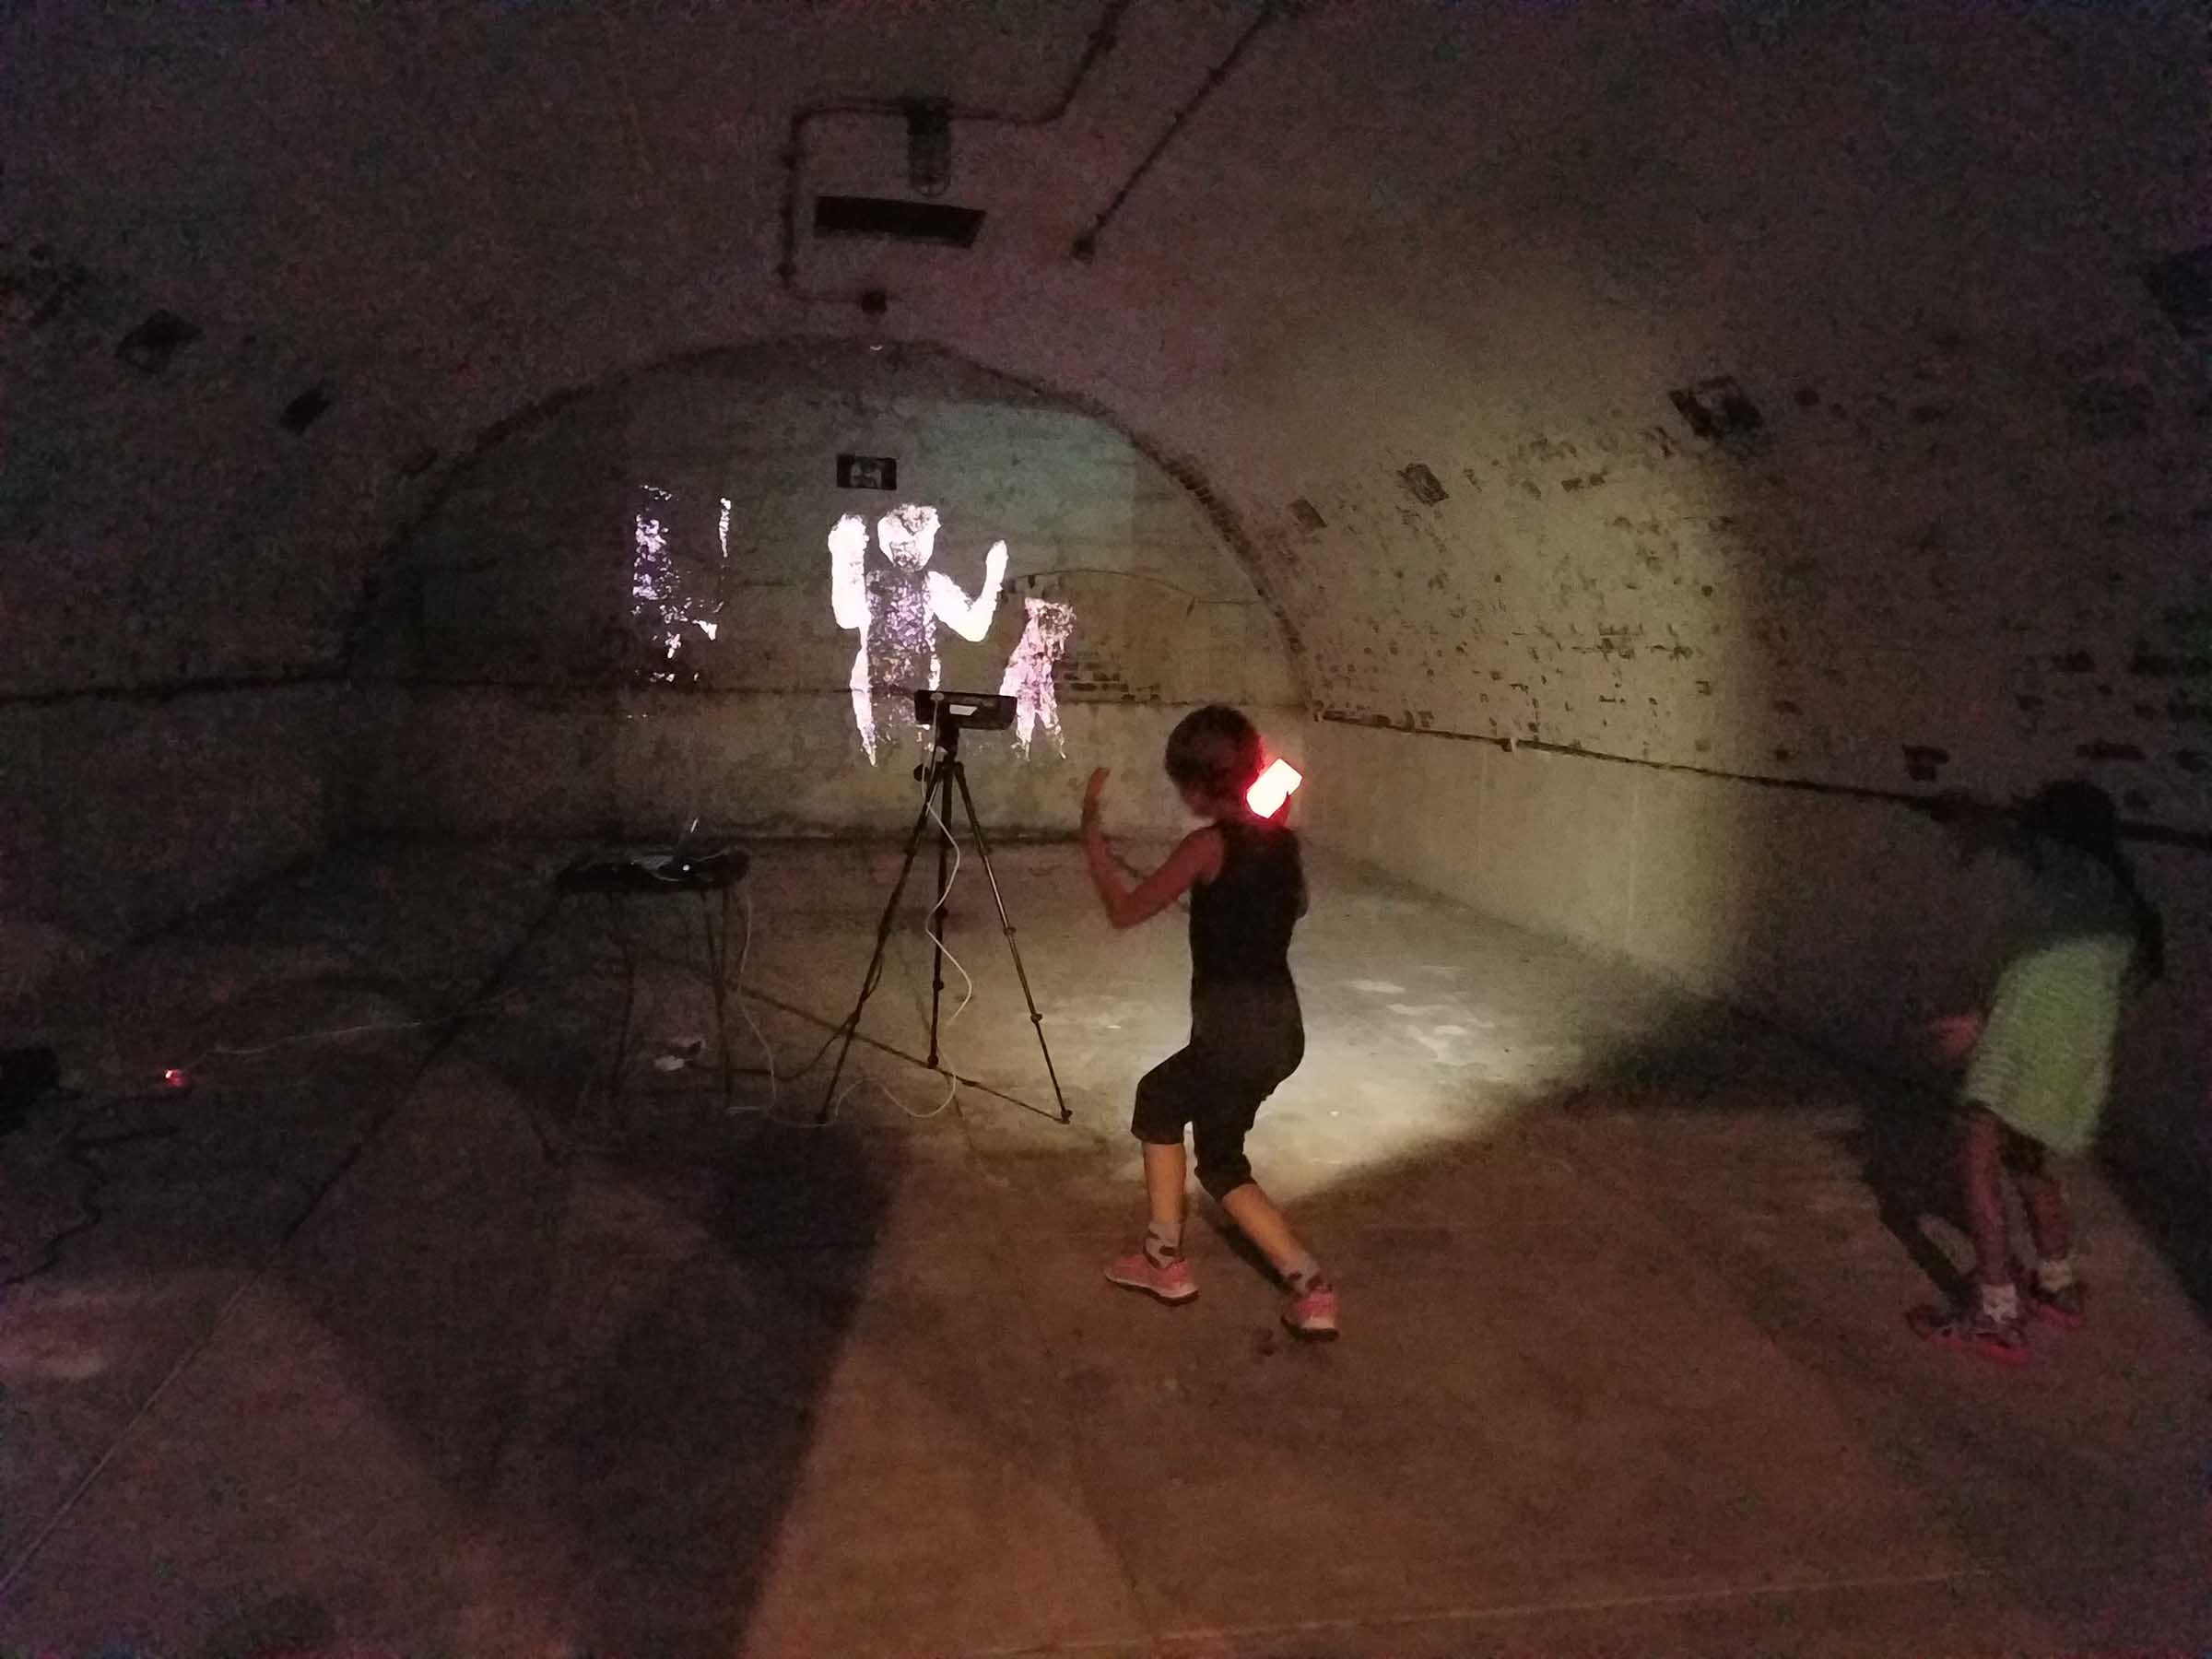 A darkened concrete chamber with a projector casting bright outlines of the people who step inside. A young child dances in front of it, using their phone as a flashlight to see where they are, while a friend watches from the side.